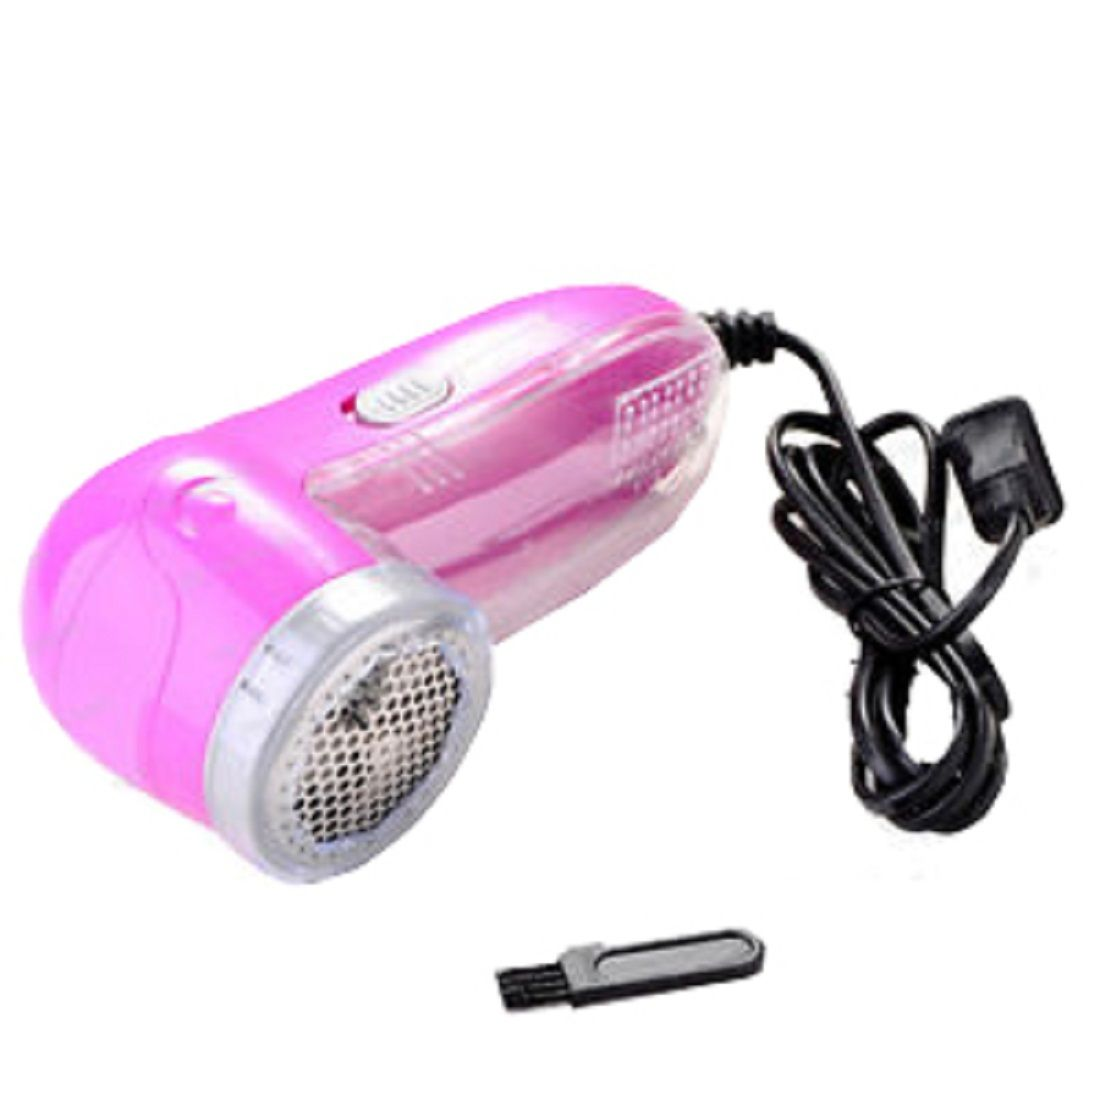 Kuber Industries™ Rechargeable Cloth Fuzz/Lint/Fluff Remover/Cloth Shaver (Lint06)